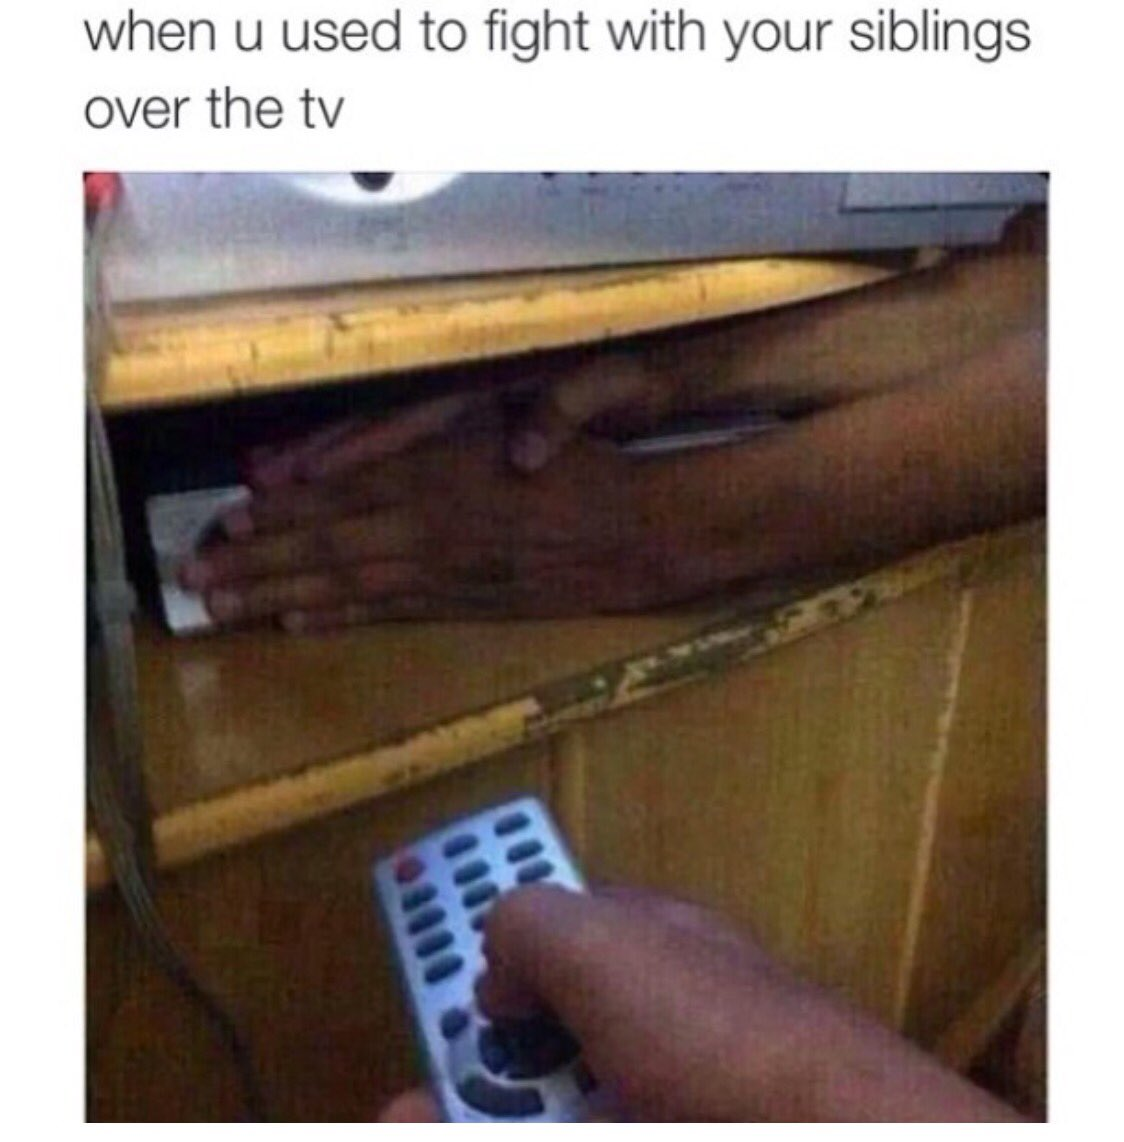 #growingupwithsiblings https://t.co/V1QzYVQTOW